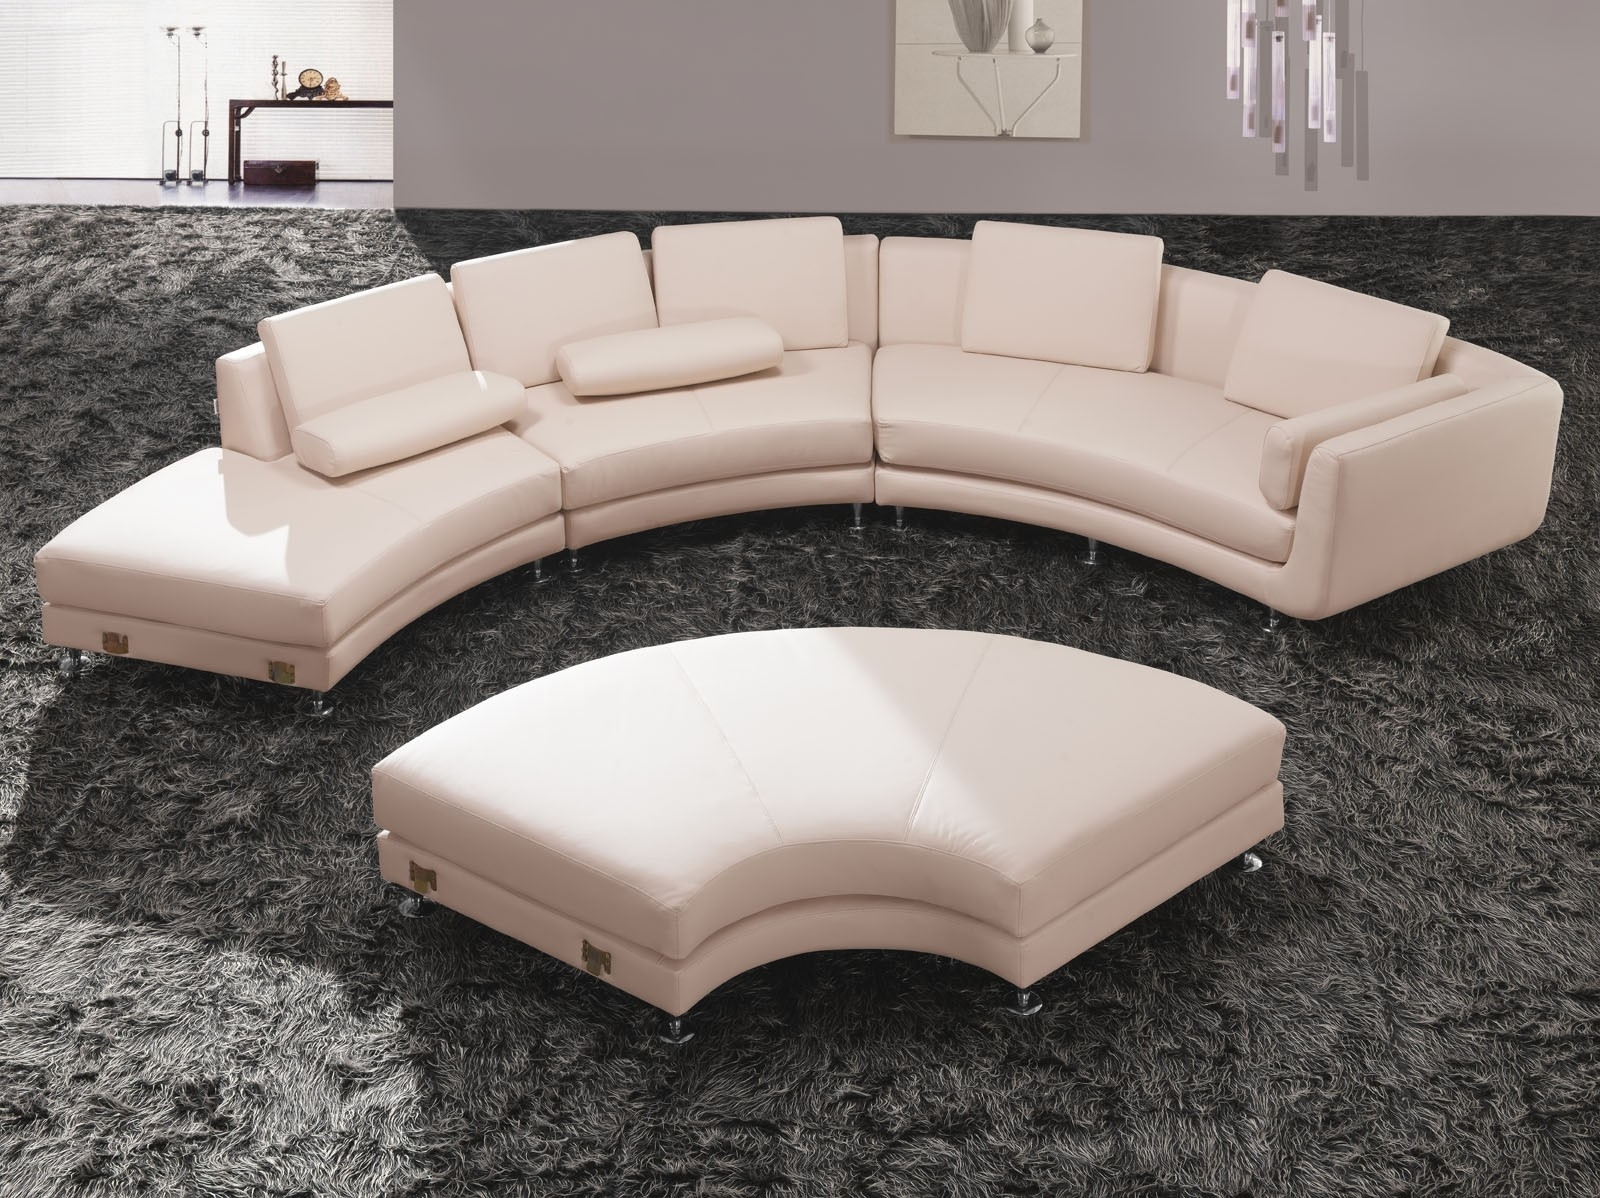 Rounded Sofas Pertaining To 2017 Sofa : Glamorous Round Sectional Sofa Bed Curved Leather Tufted (View 10 of 15)